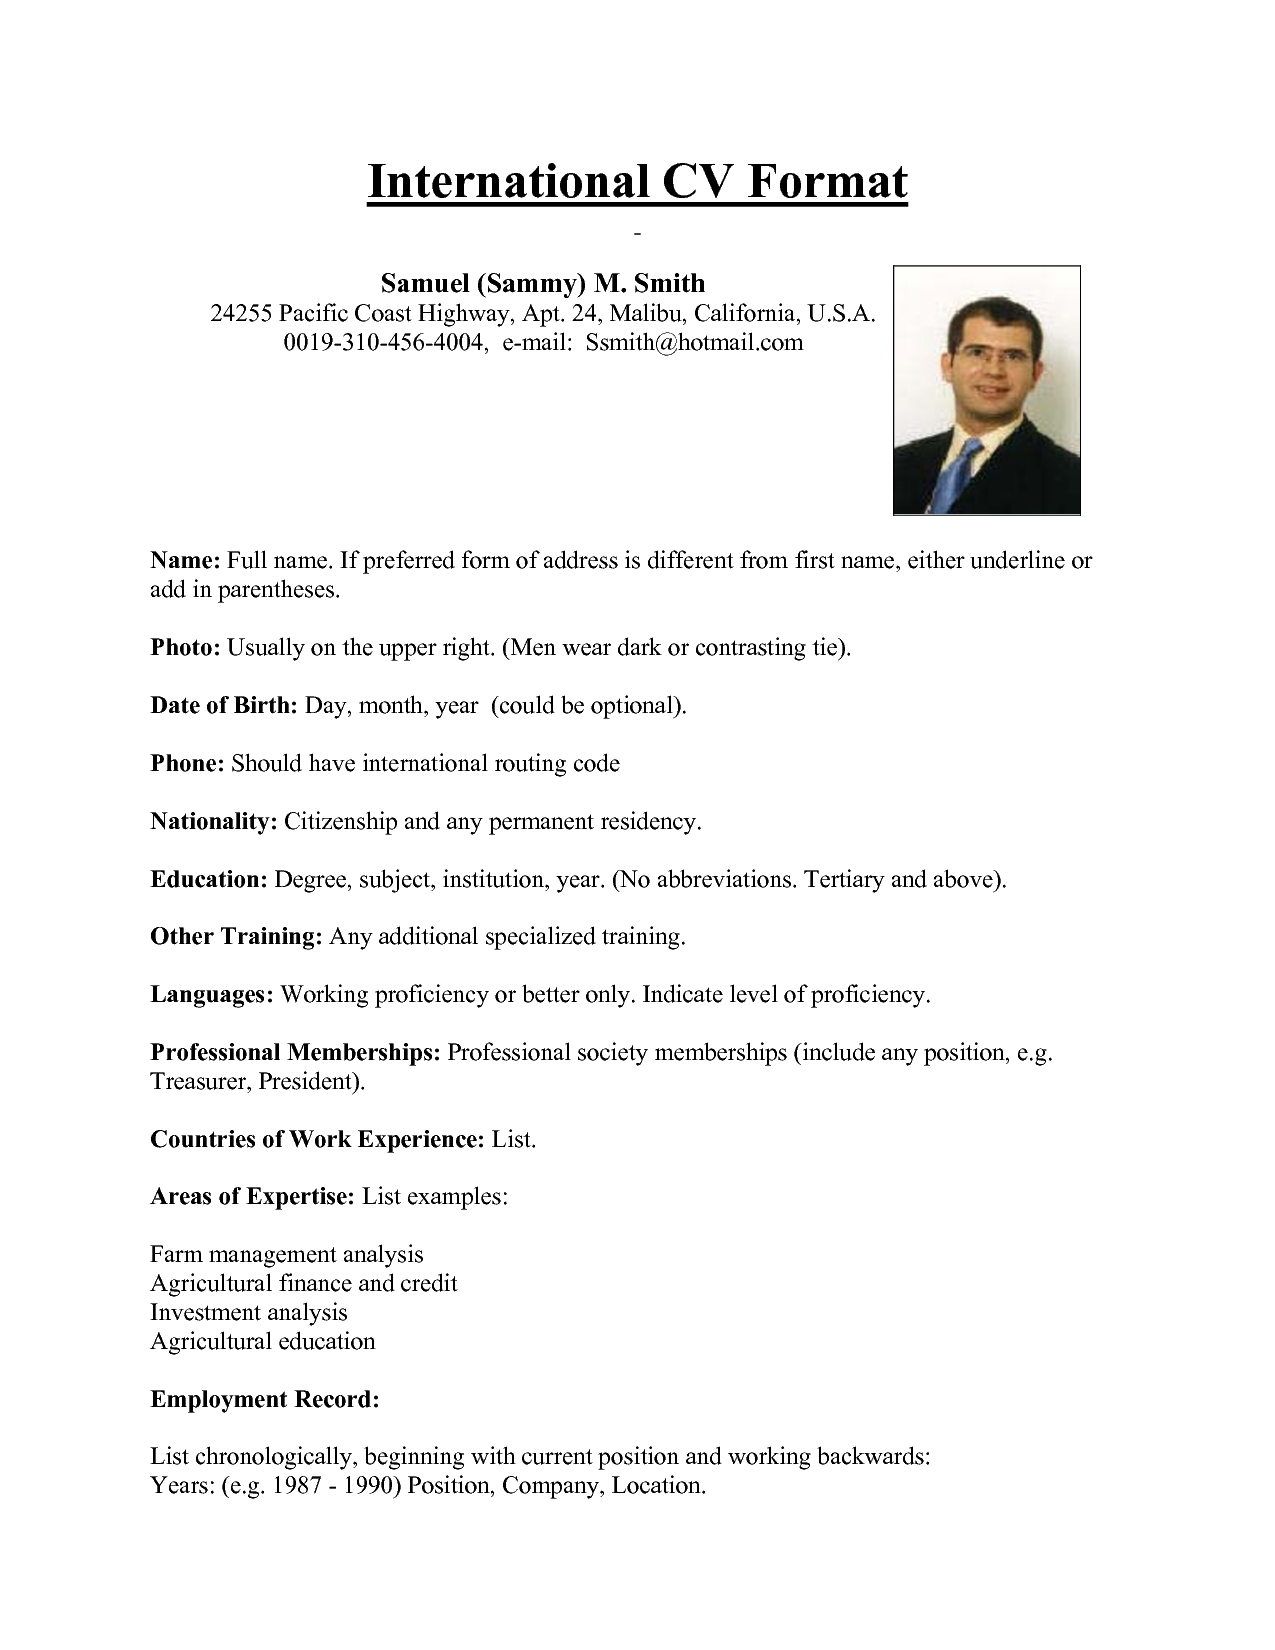 international resume template sample format of resume clean professional one page resume - Curriculum Vitae For University Application